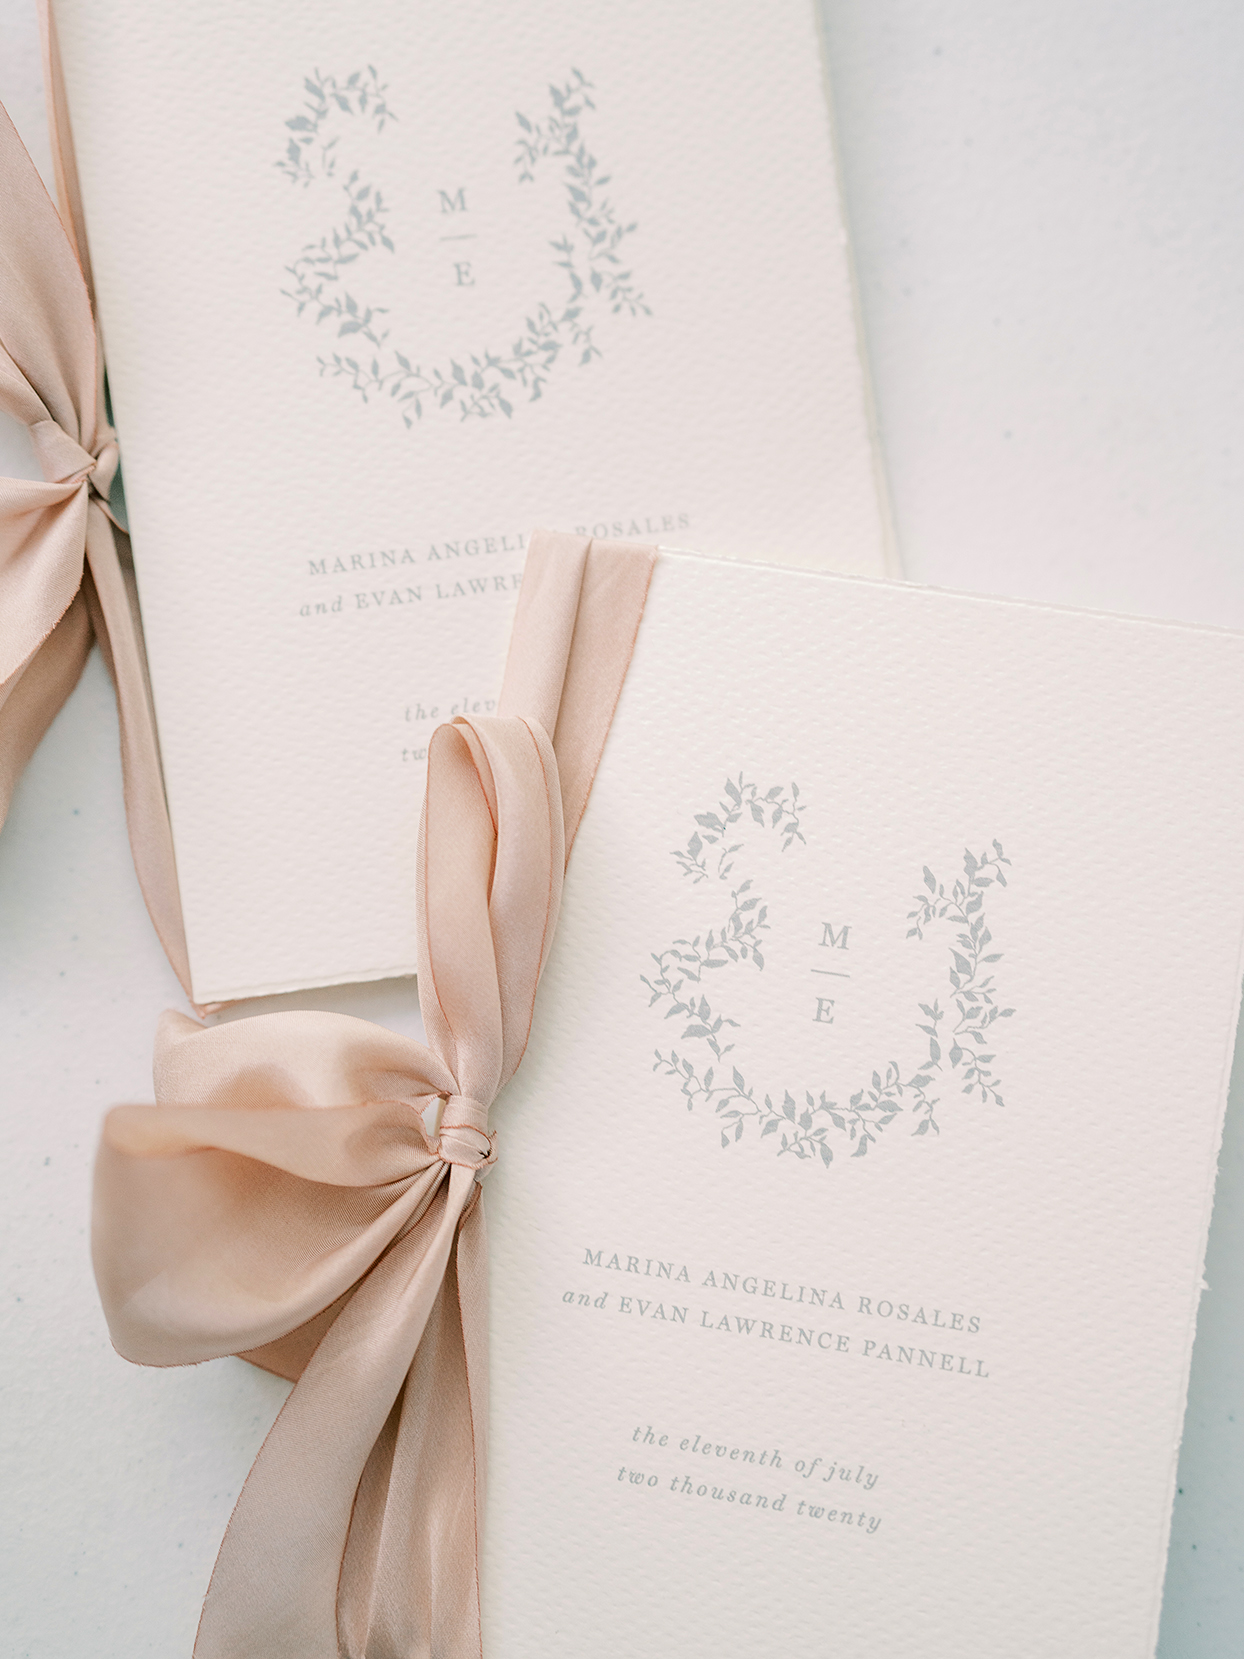 marina evan wedding vow books